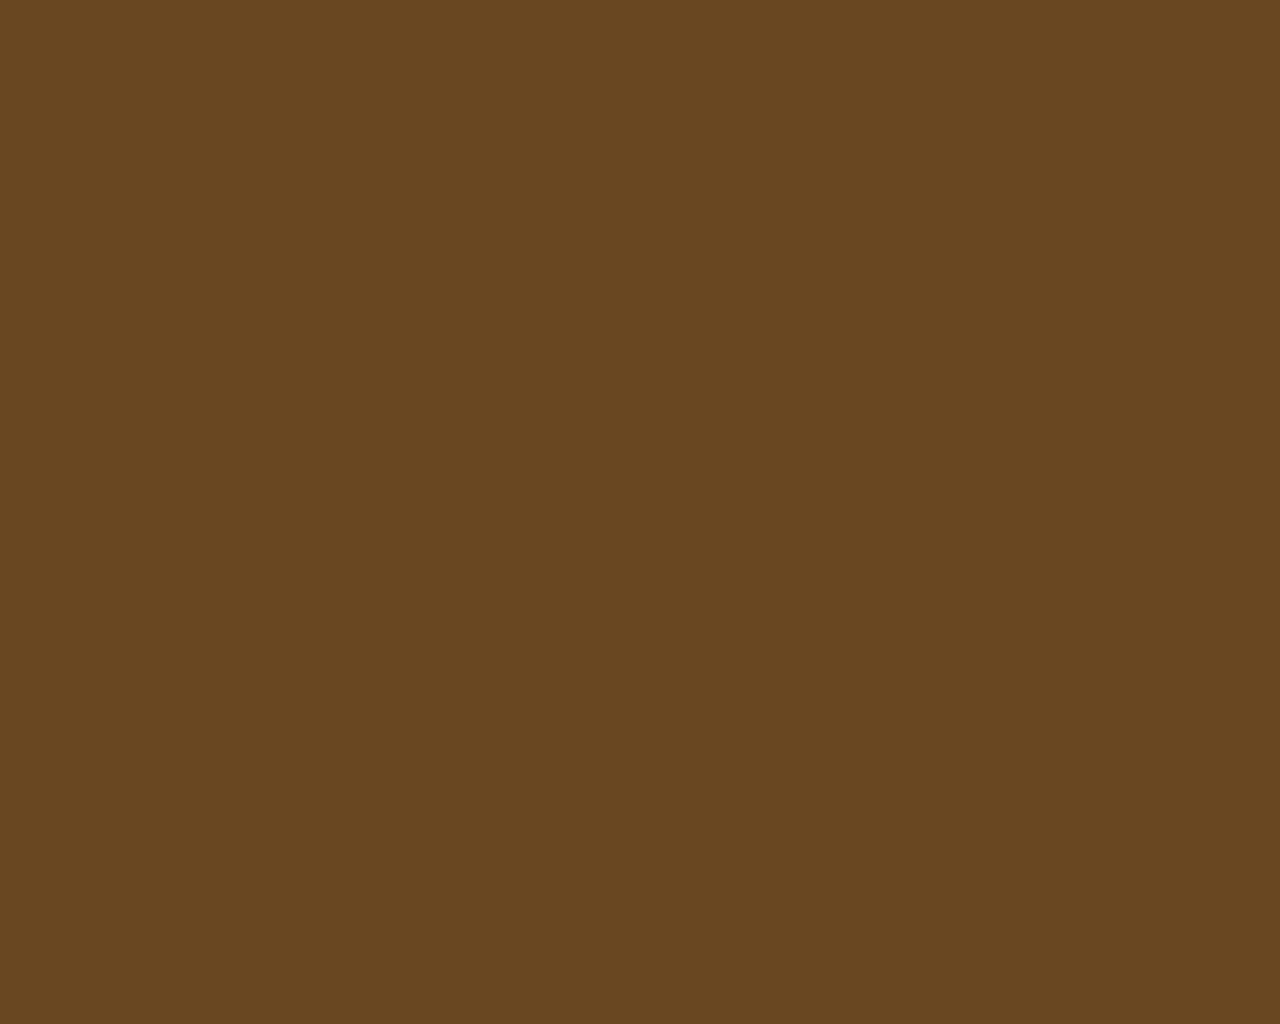 1280x1024 Brown-nose Solid Color Background